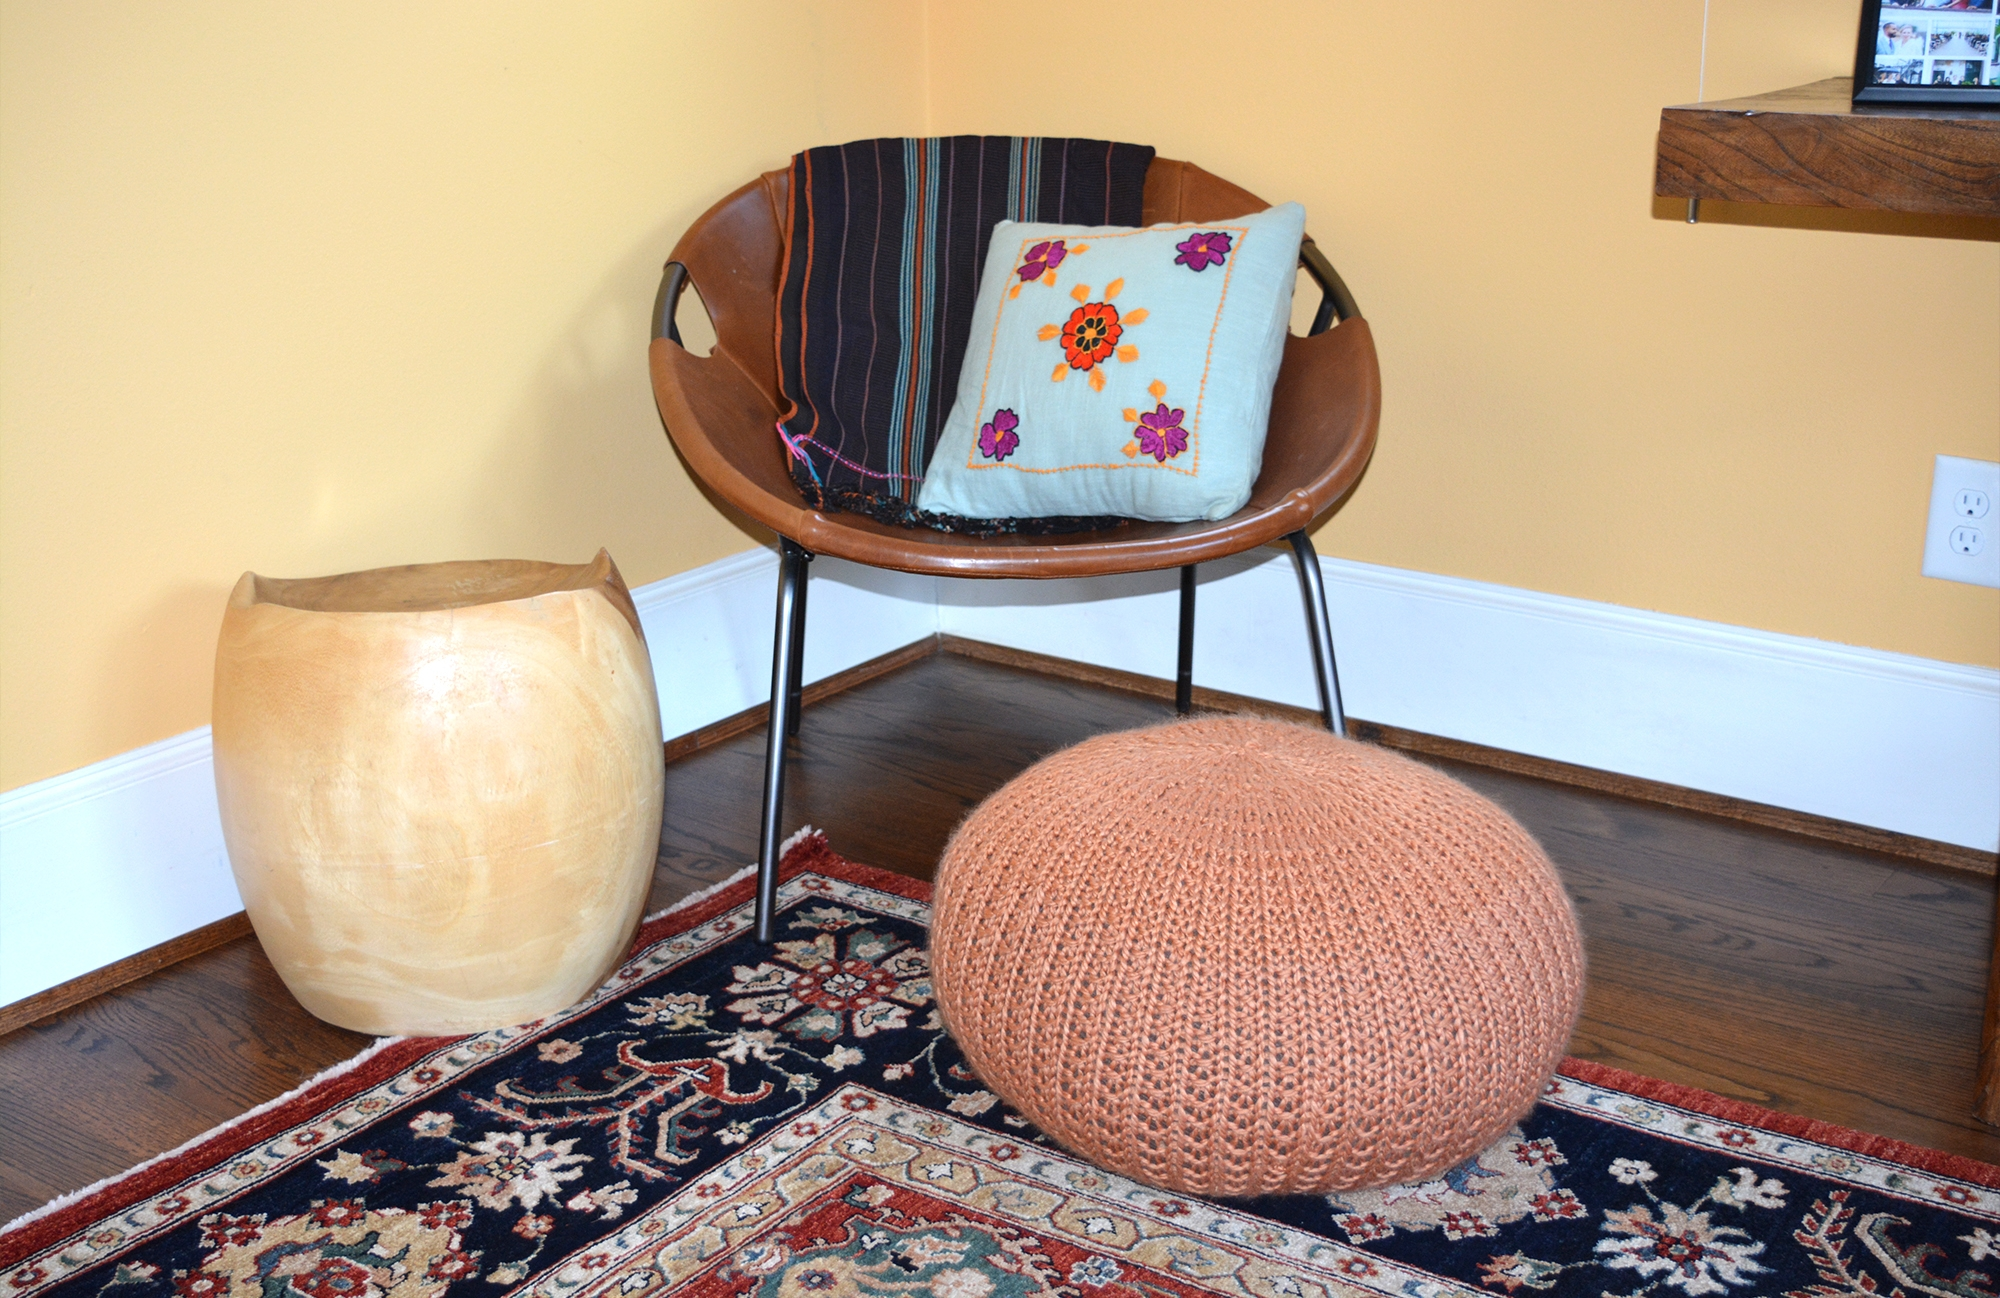 The brown floor pouf and embroidered blue pillow accent the rug and chair.